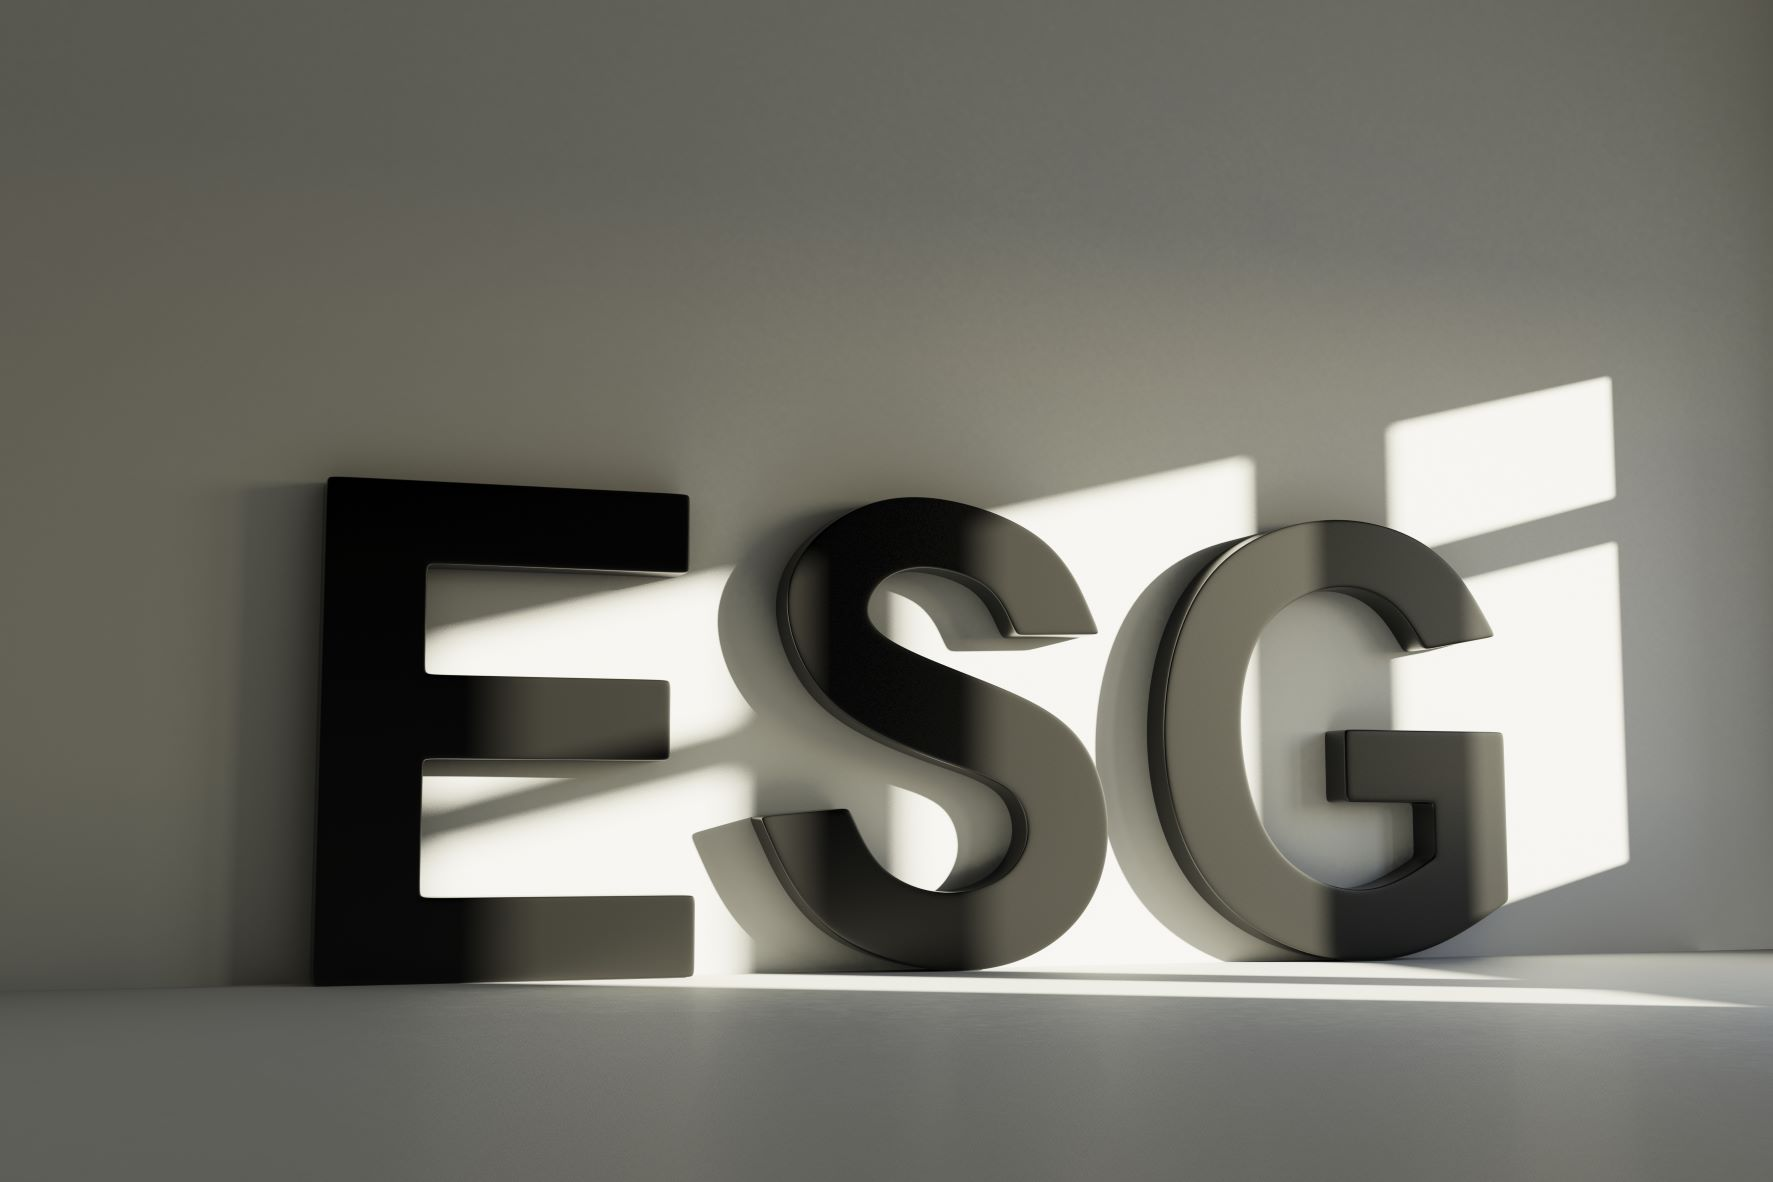 """""""ESG"""" in large block letters leaning against a wall with light from a window hitting them"""